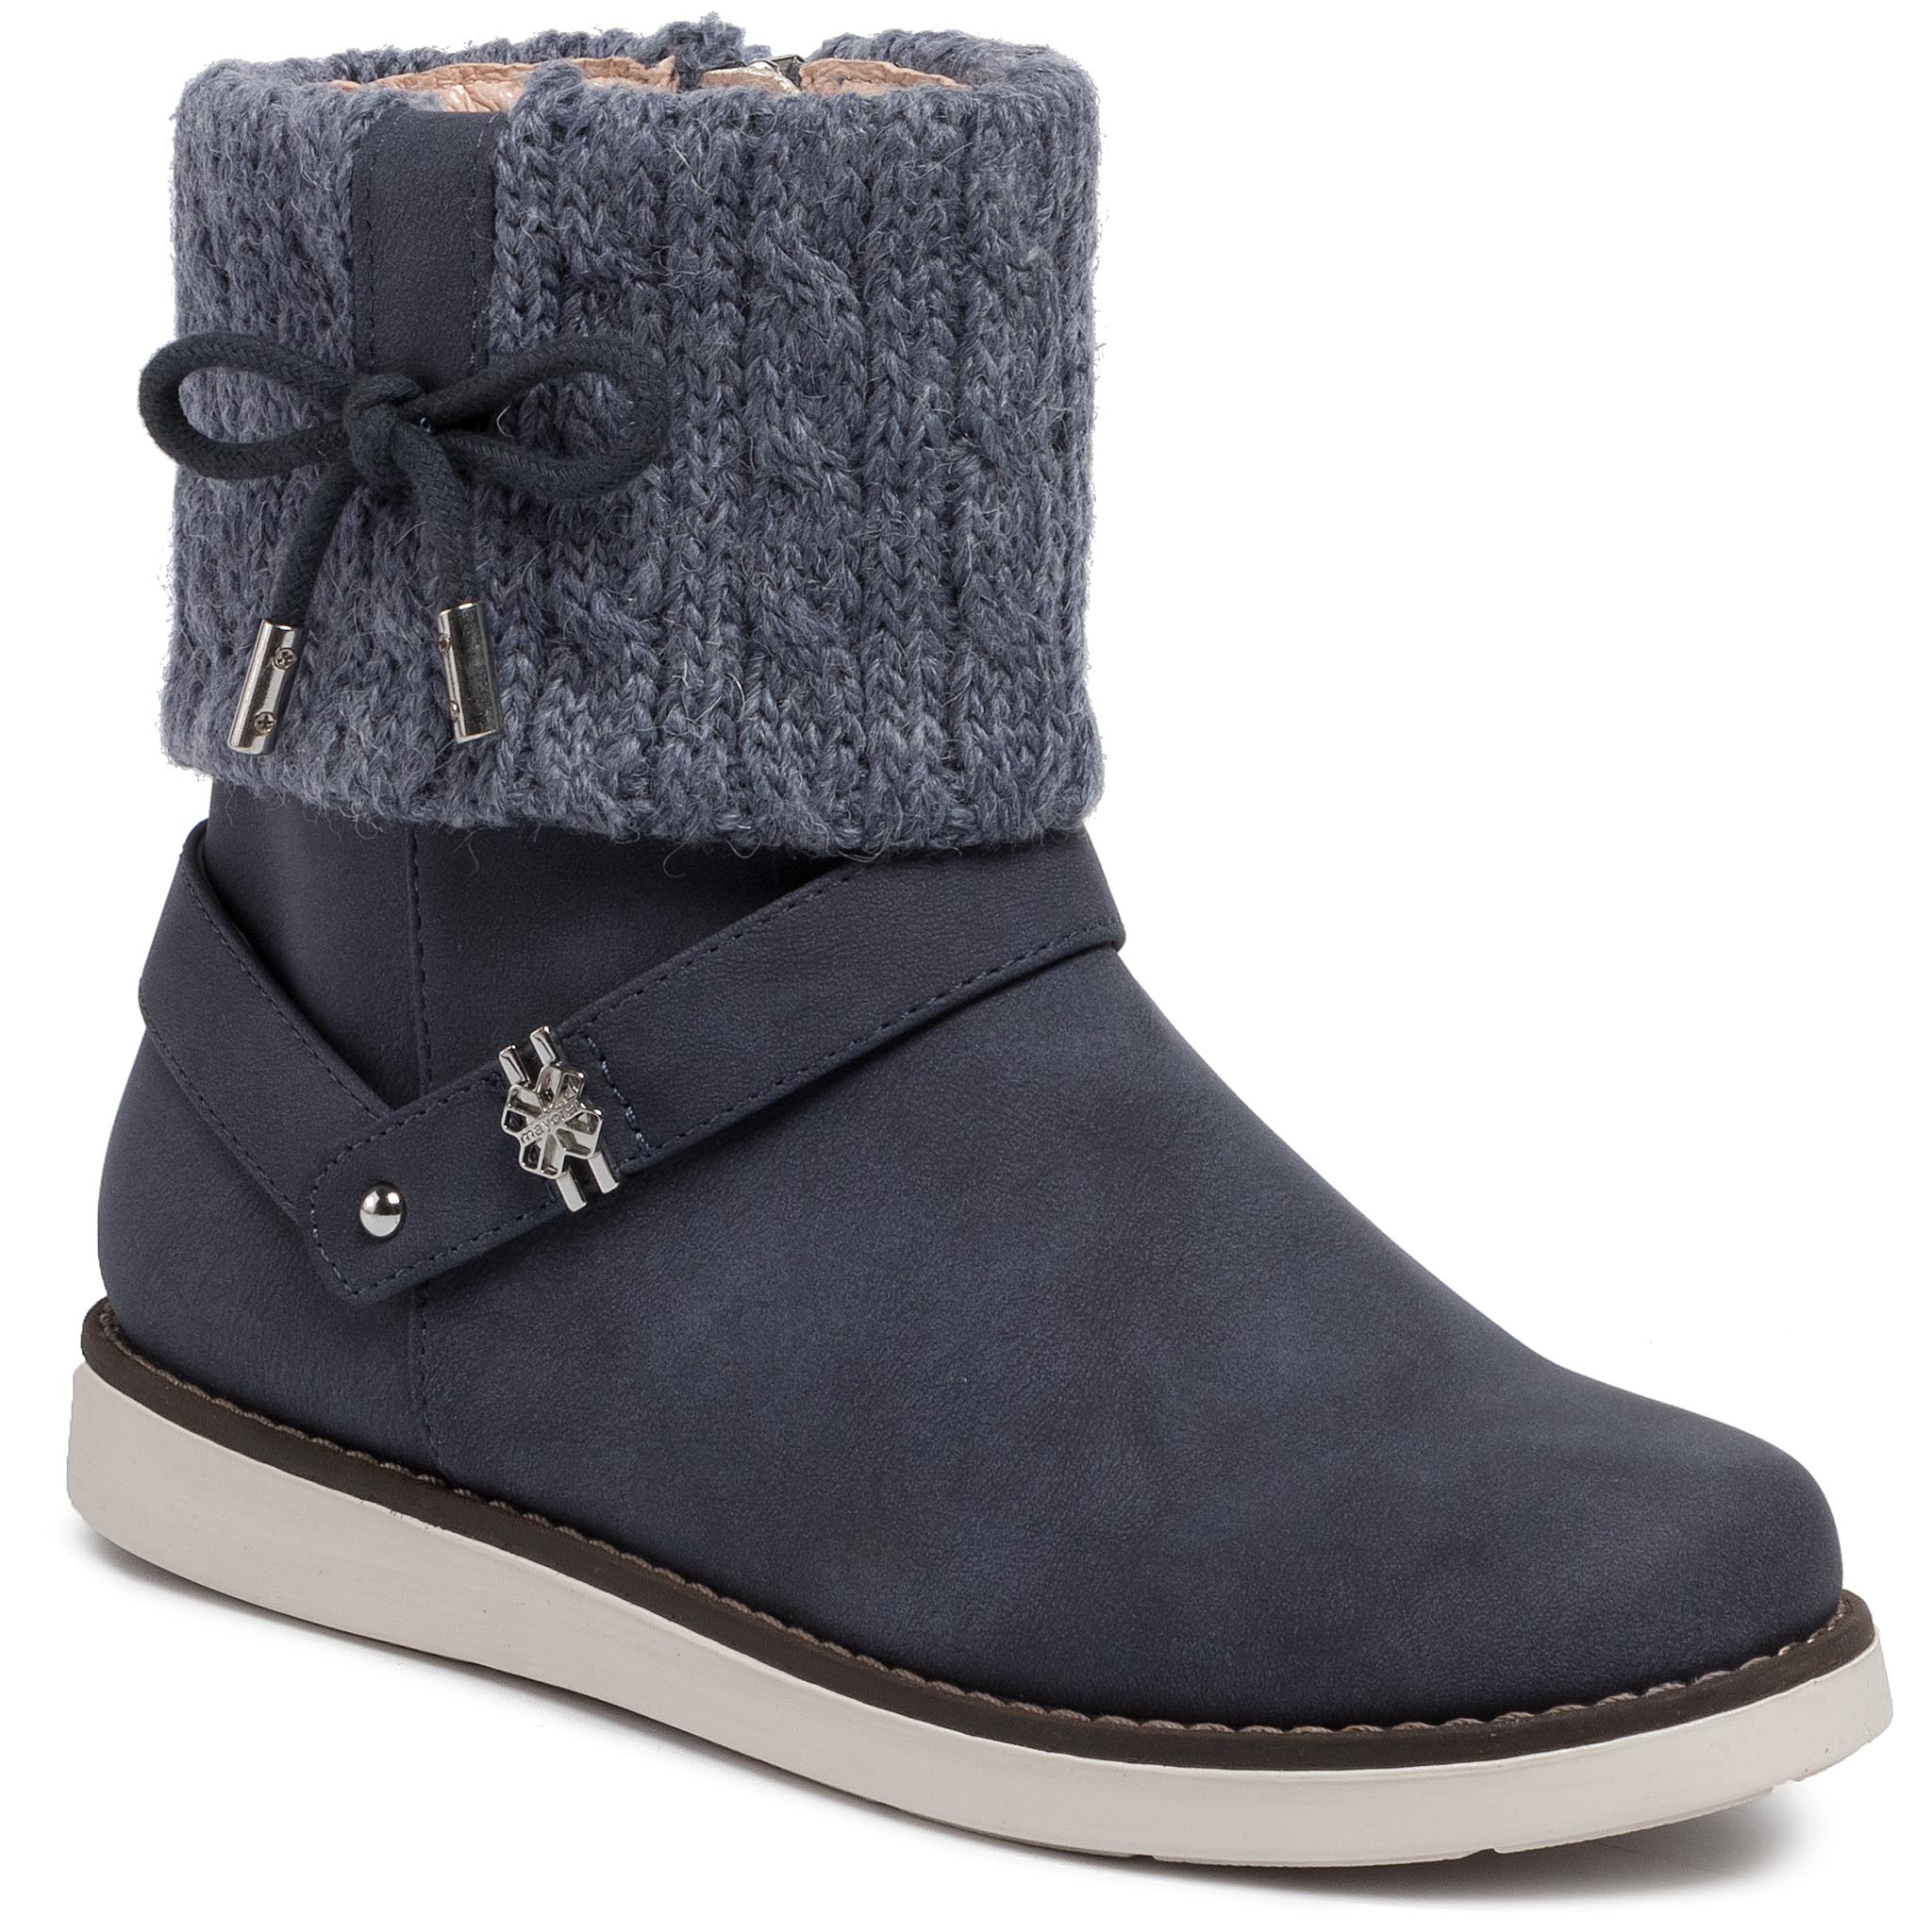 Boots MAYORAL - 46033 Jeans 75